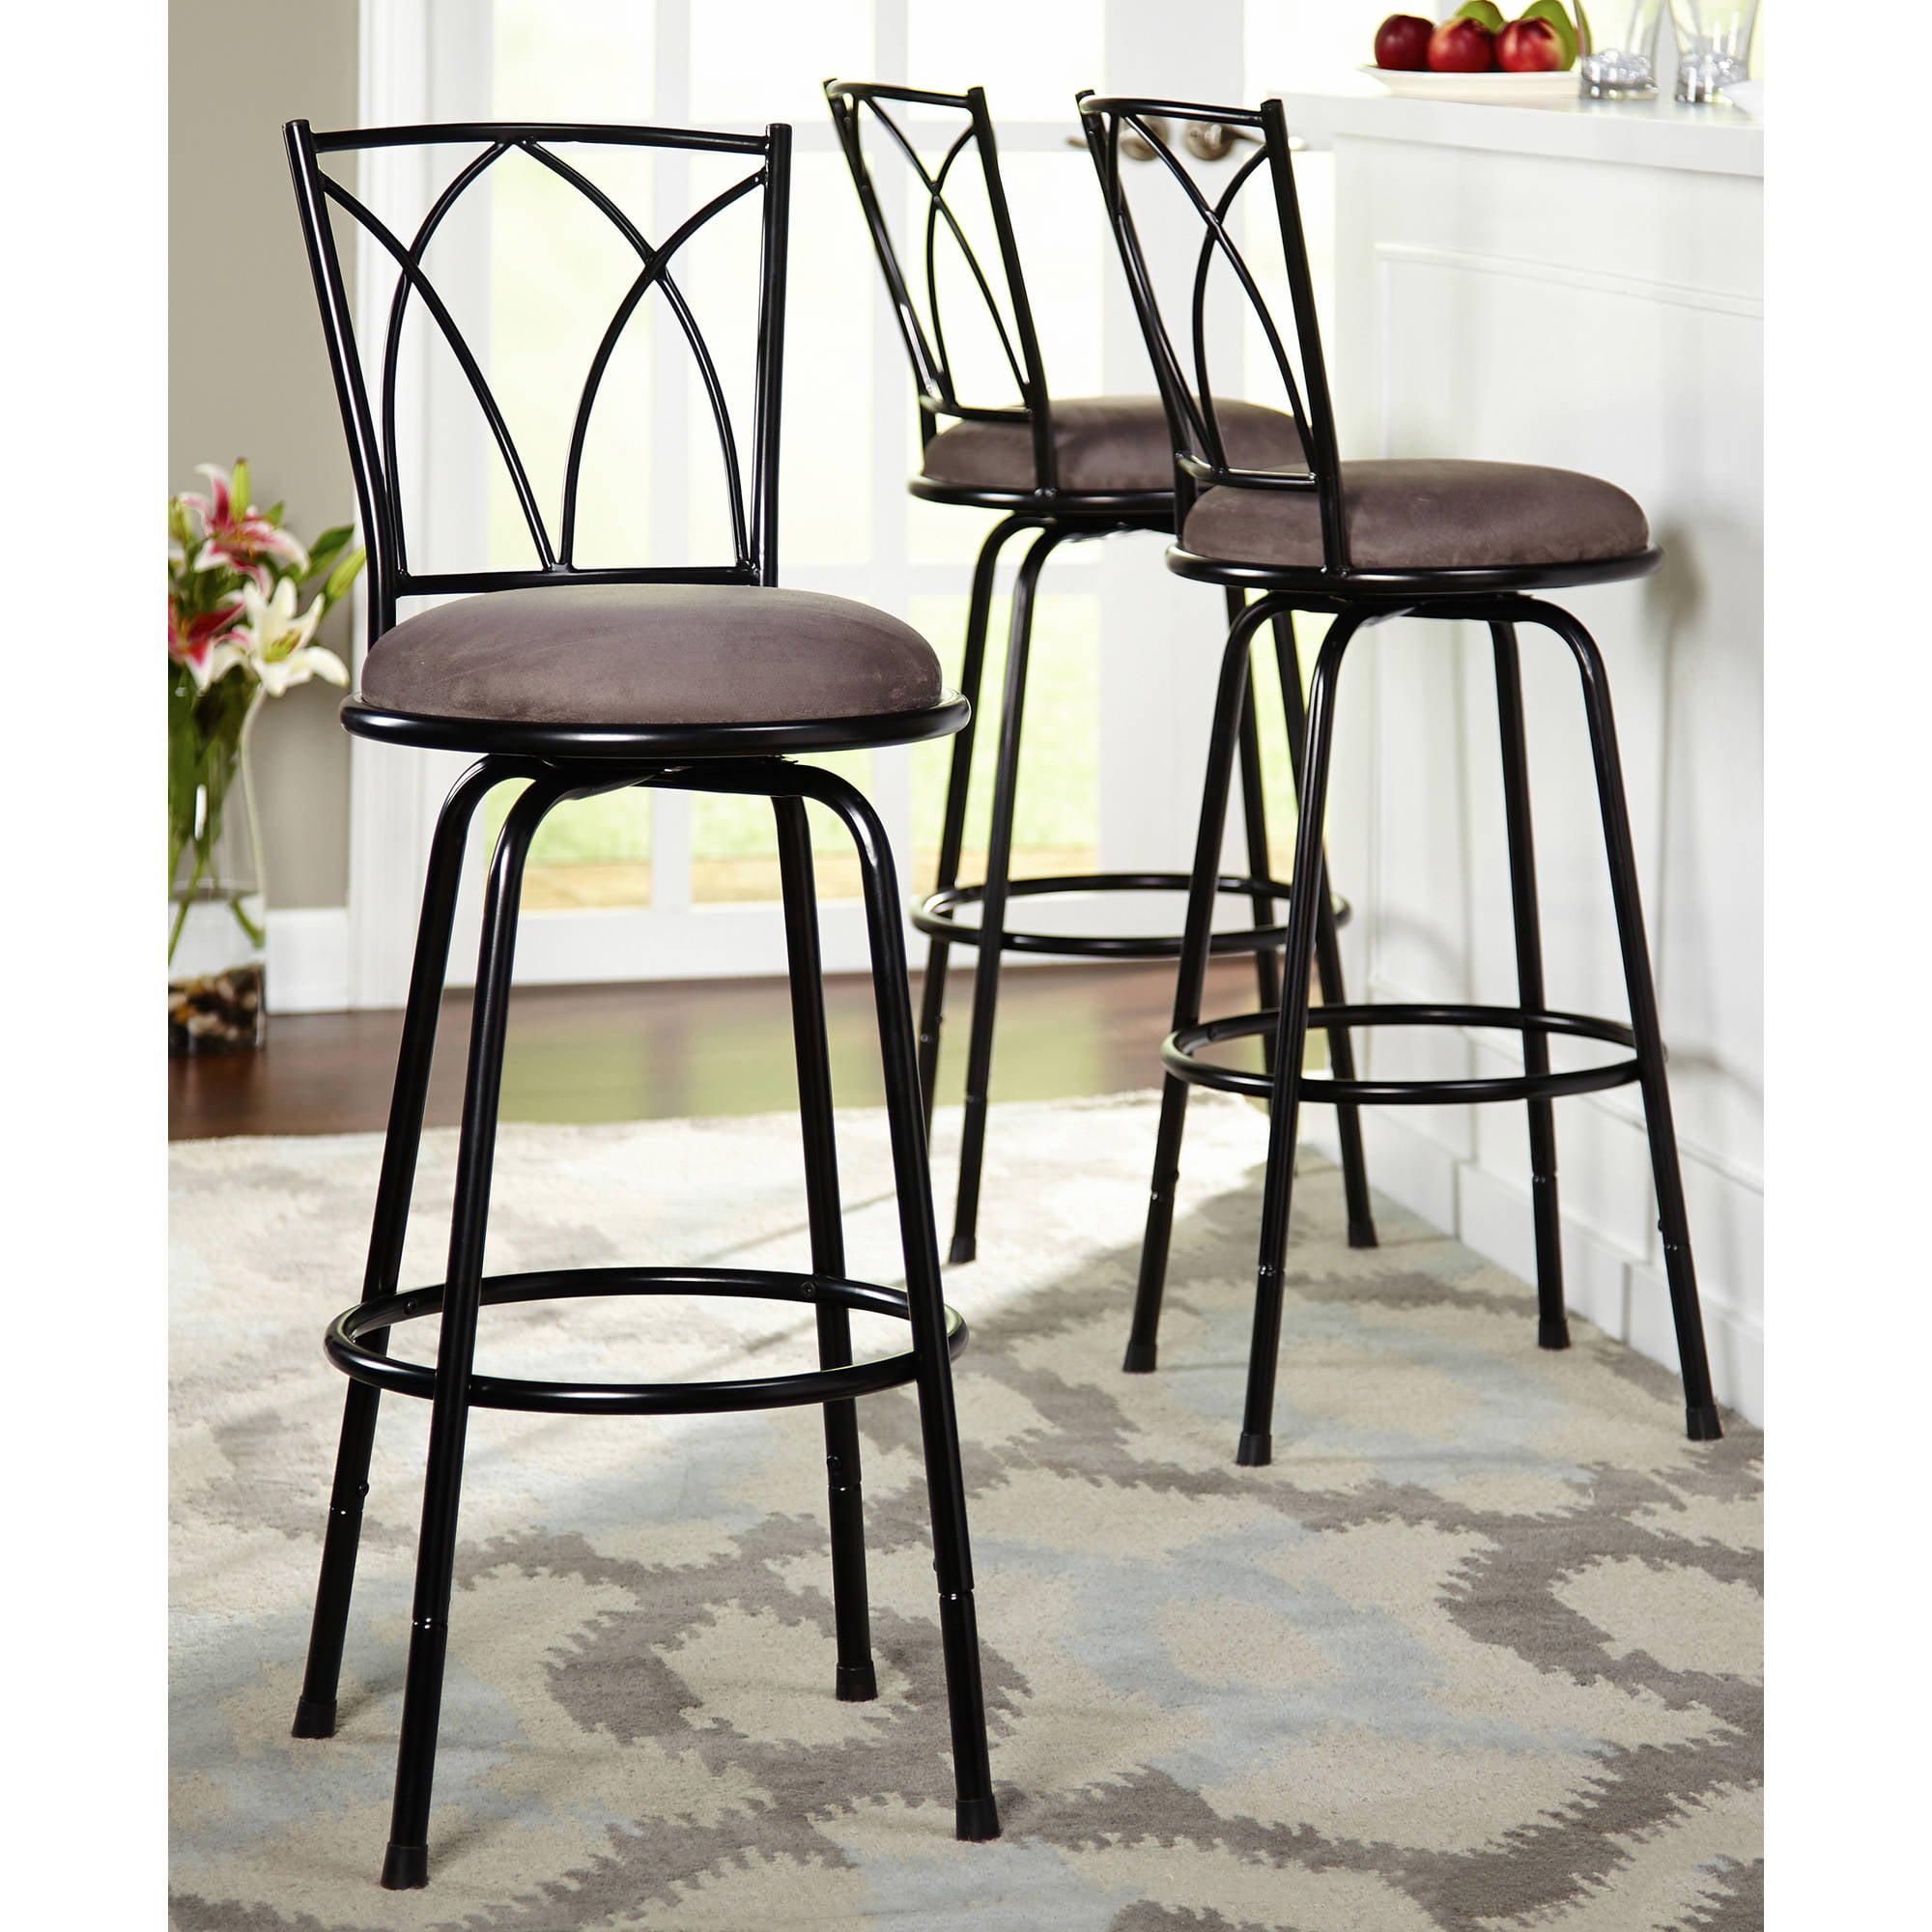 Beau Delta Adjustable Metal Barstools, 3 Piece Set, Black   Walmart.com